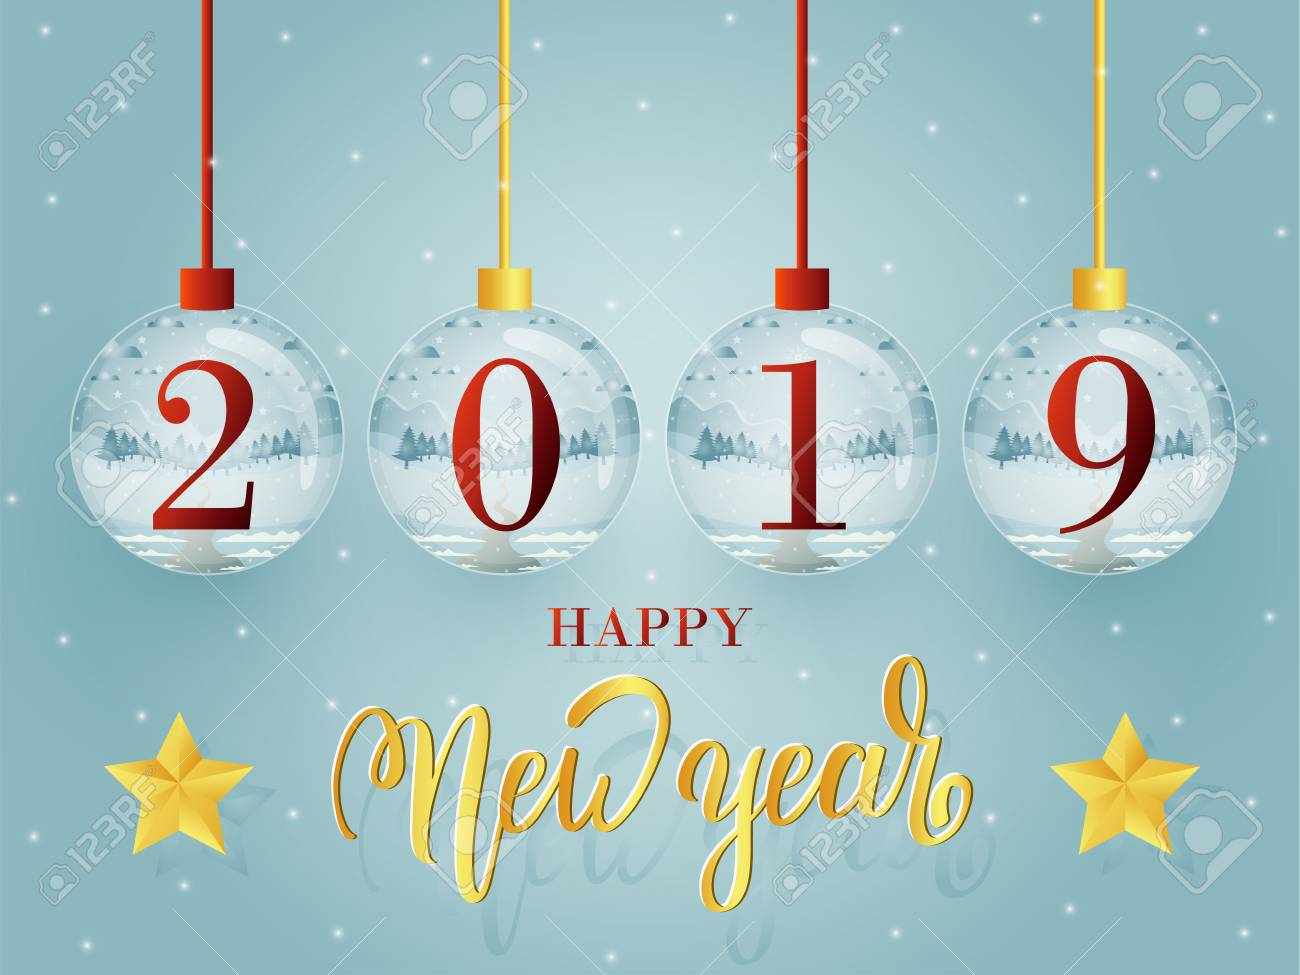 happy new year 2019 greeting card template design with glass ball collection stock photo